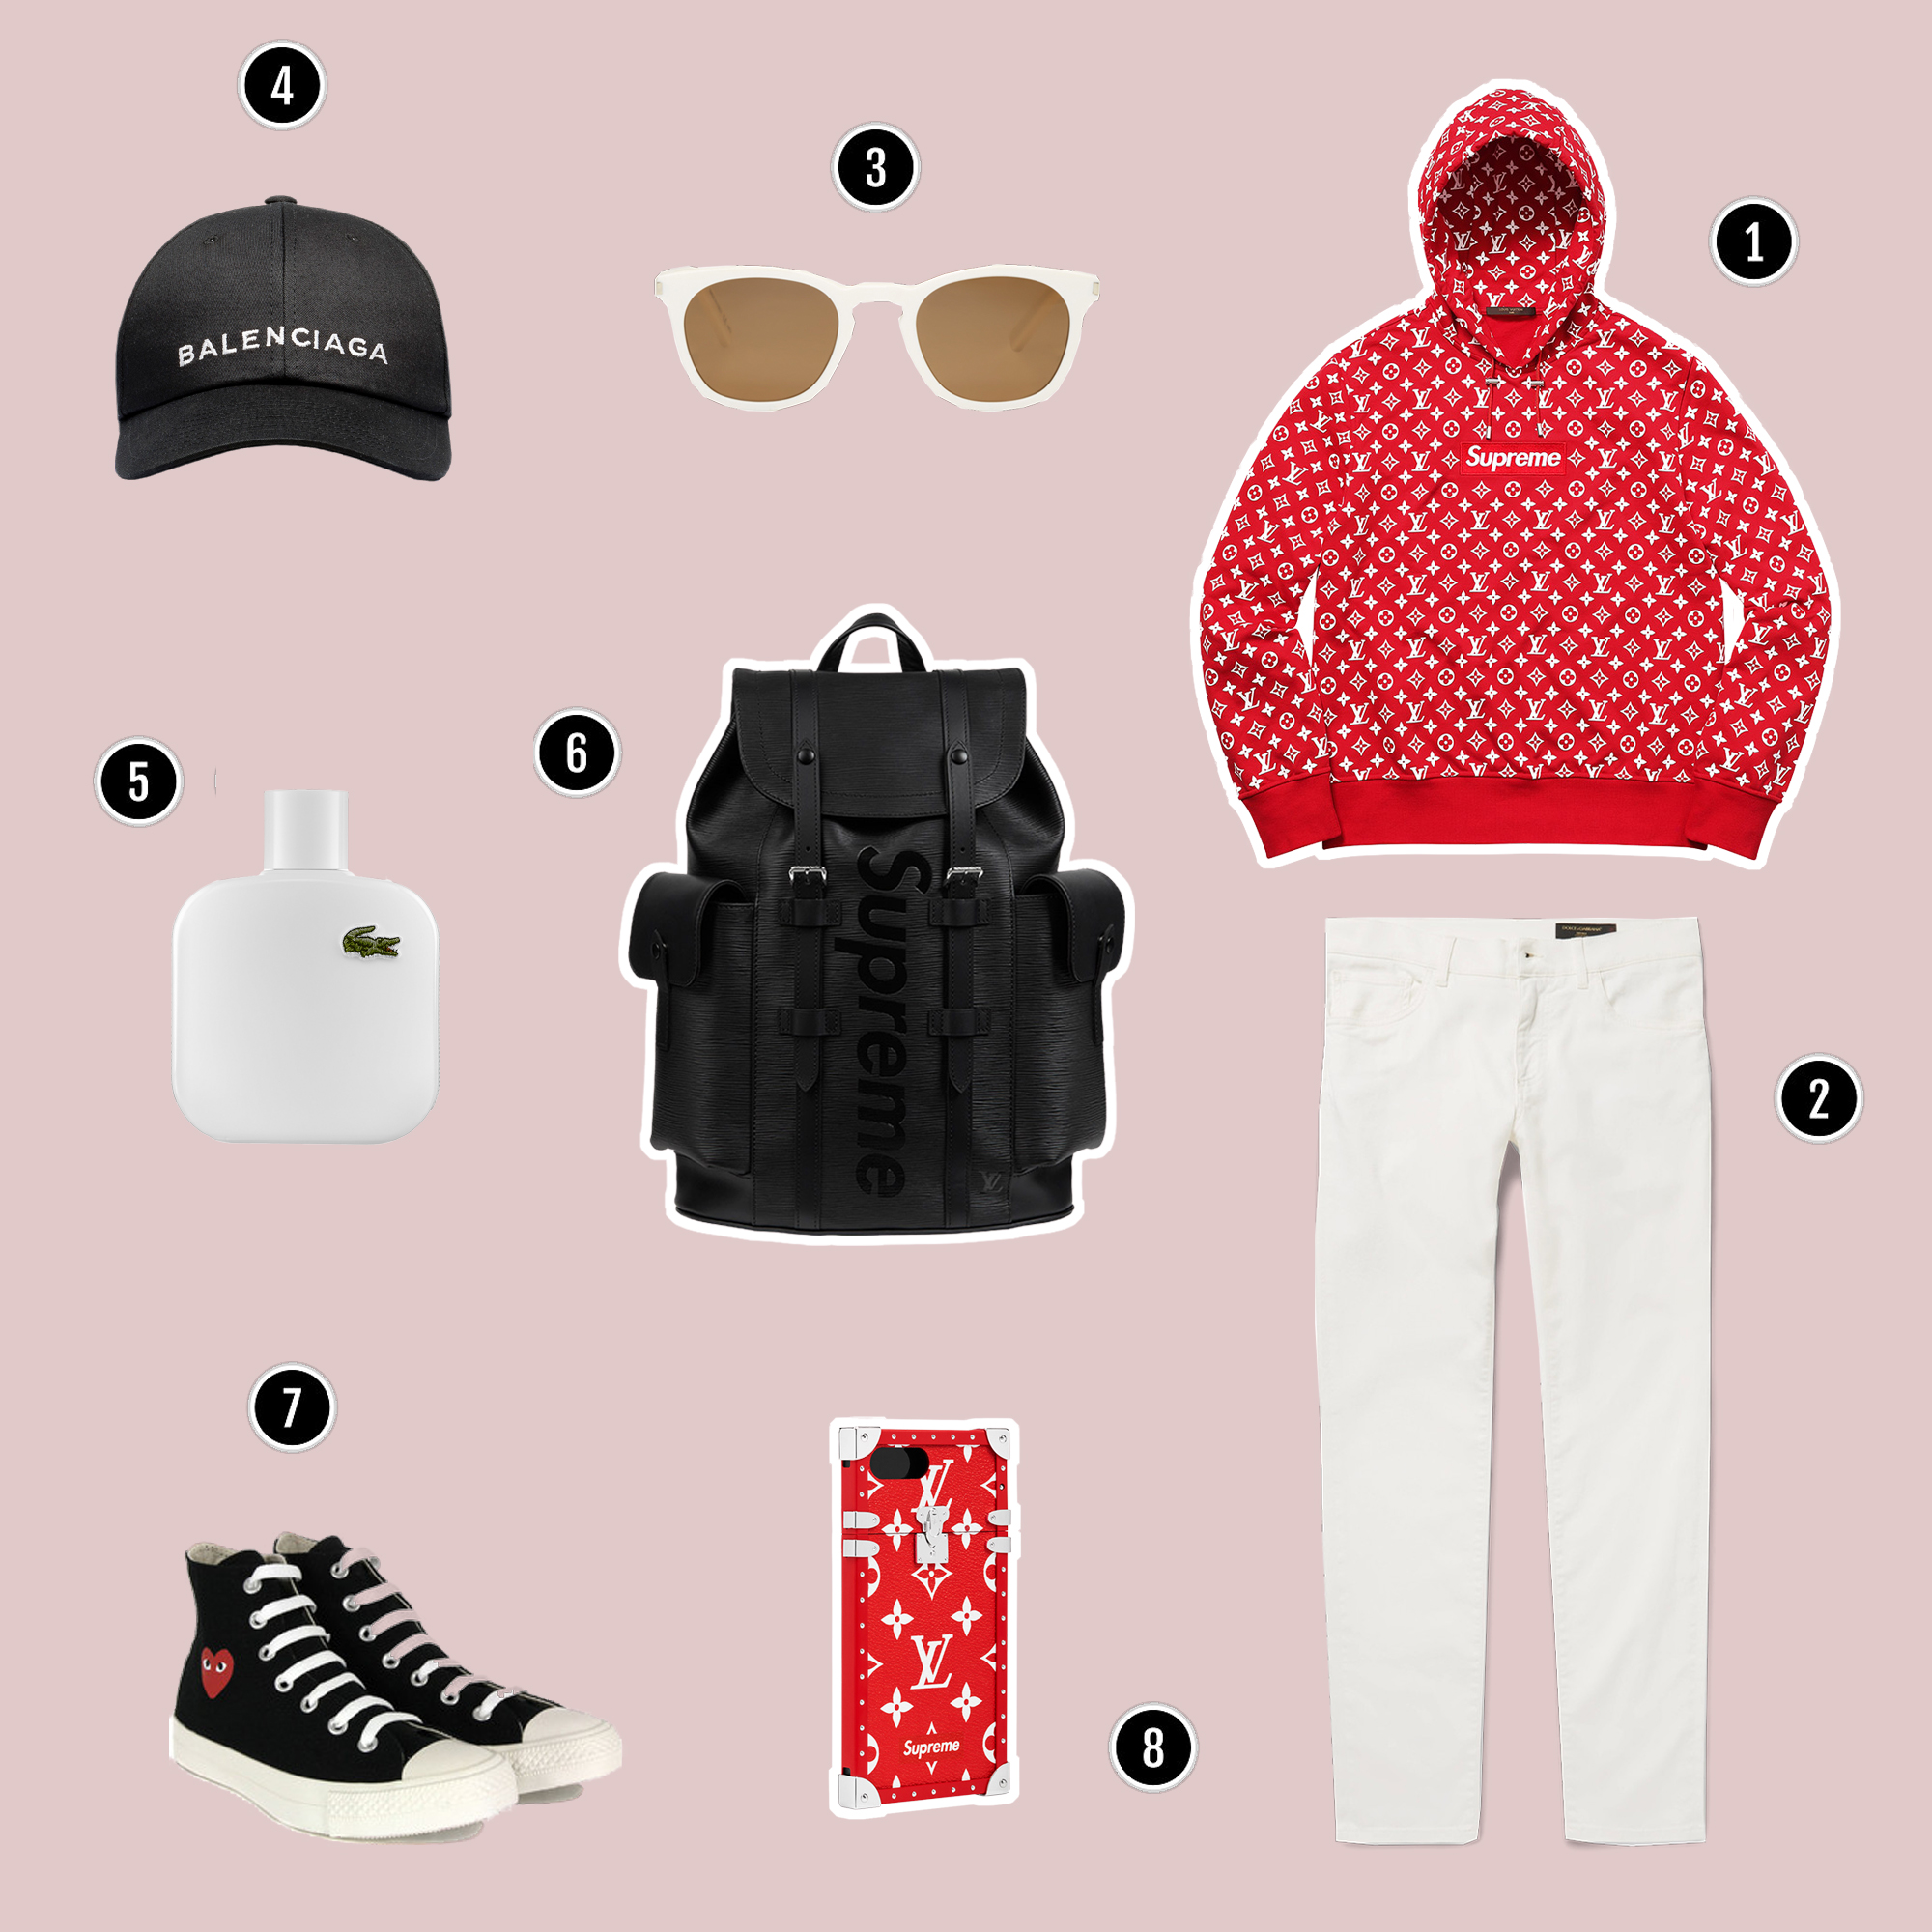 1.Áo hoodie : Louis Vuitton x Supreme / 2. Quần : D&G / 3. Kính : Saint Laurent / 4. Mũ : Balenciaga / 5. Nước hoa : Lacoste / 6. Túi backpack : Louis Vuitton x Supreme /. 7. Sneakers : Comme Des Garcon / 8. Ốp điện thoại : Louis Vuitton x Supreme